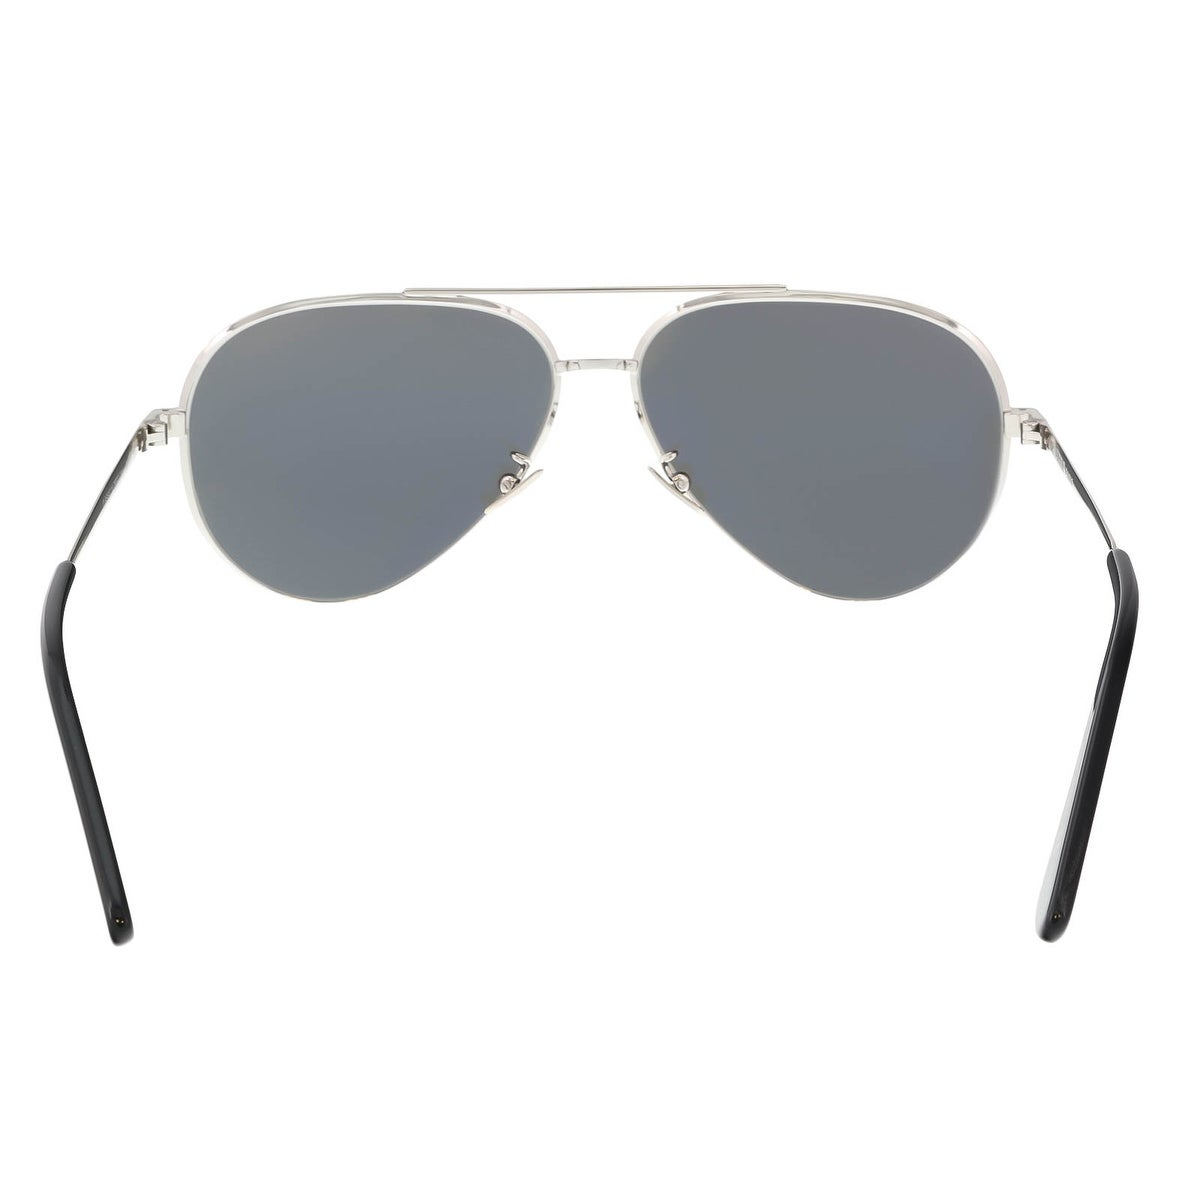 d3261dcded1 Shop Saint Laurent CLASSIC 11 ZERO-001 Silver Aviator - 60-13-145 - Free  Shipping Today - Overstock - 16256157